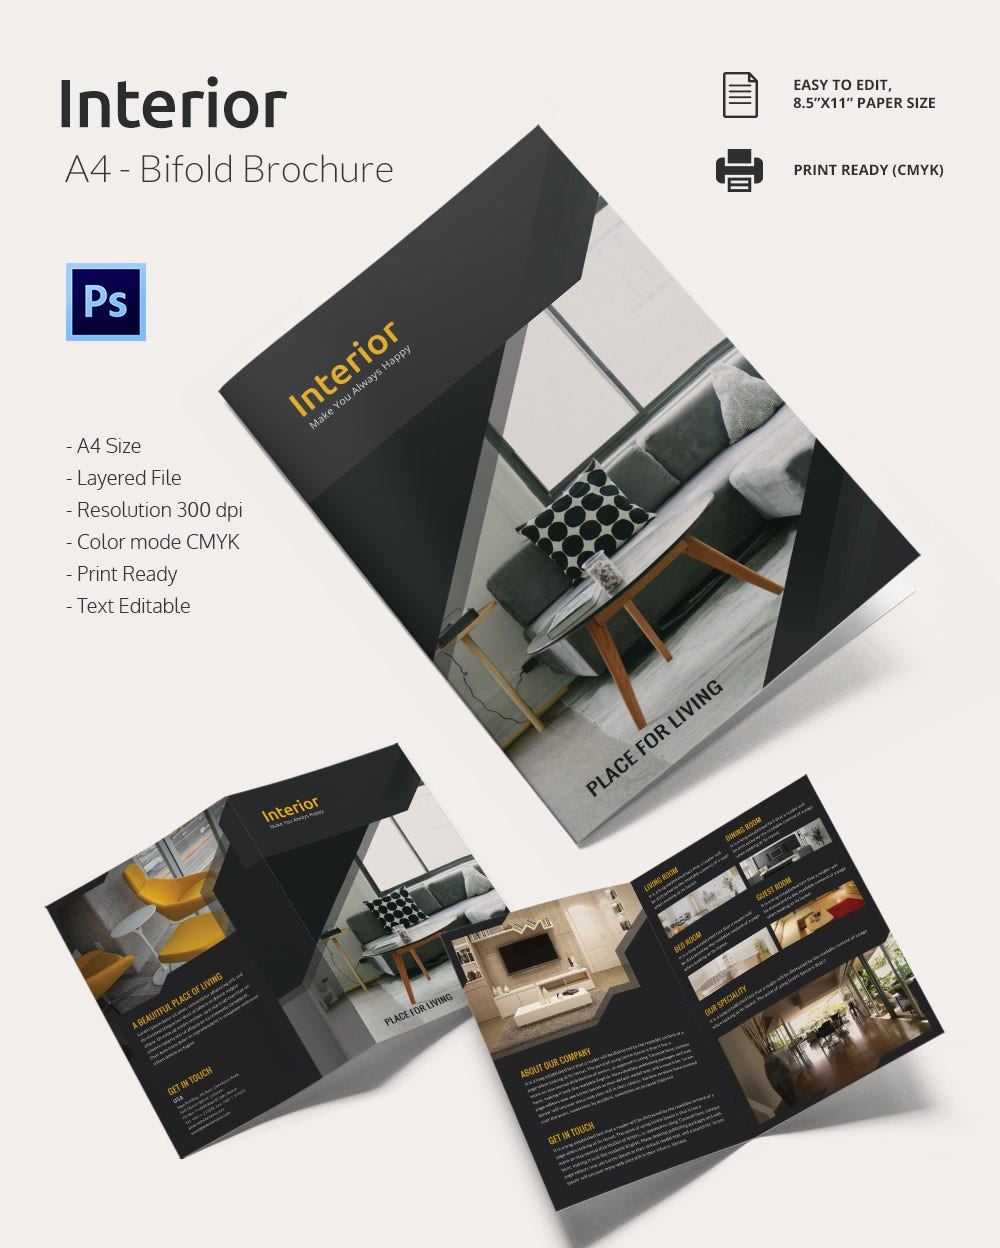 a4 tri fold brochure template - interior design brochure 25 free psd eps indesign